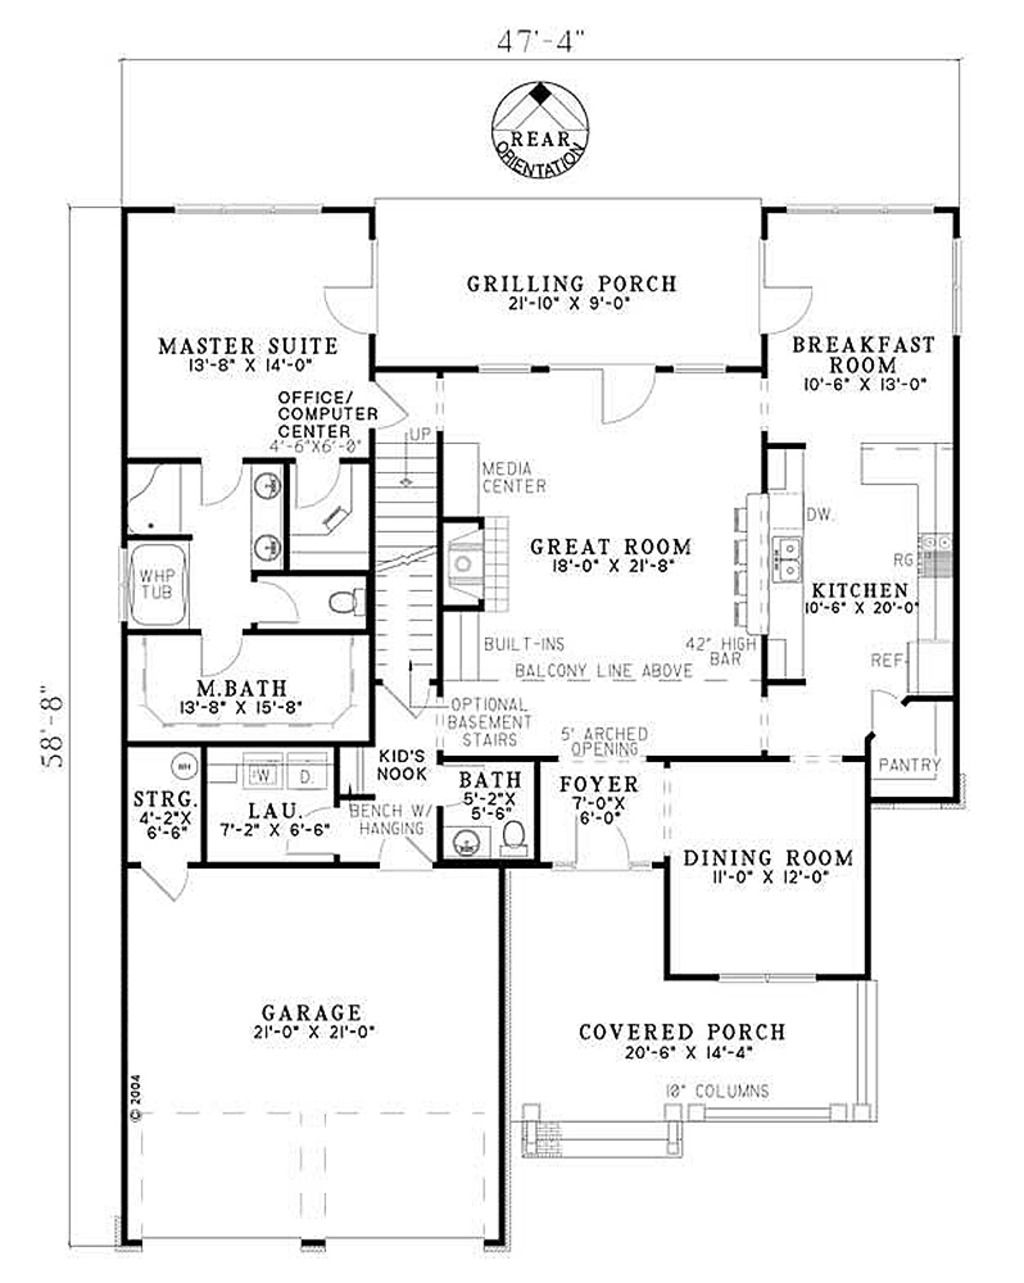 Craftsman Style House Plan 4 Beds 3 Baths 2470 Sq Ft Plan 17 2131 Craftsman Style House Plans How To Plan Bungalow House Plans